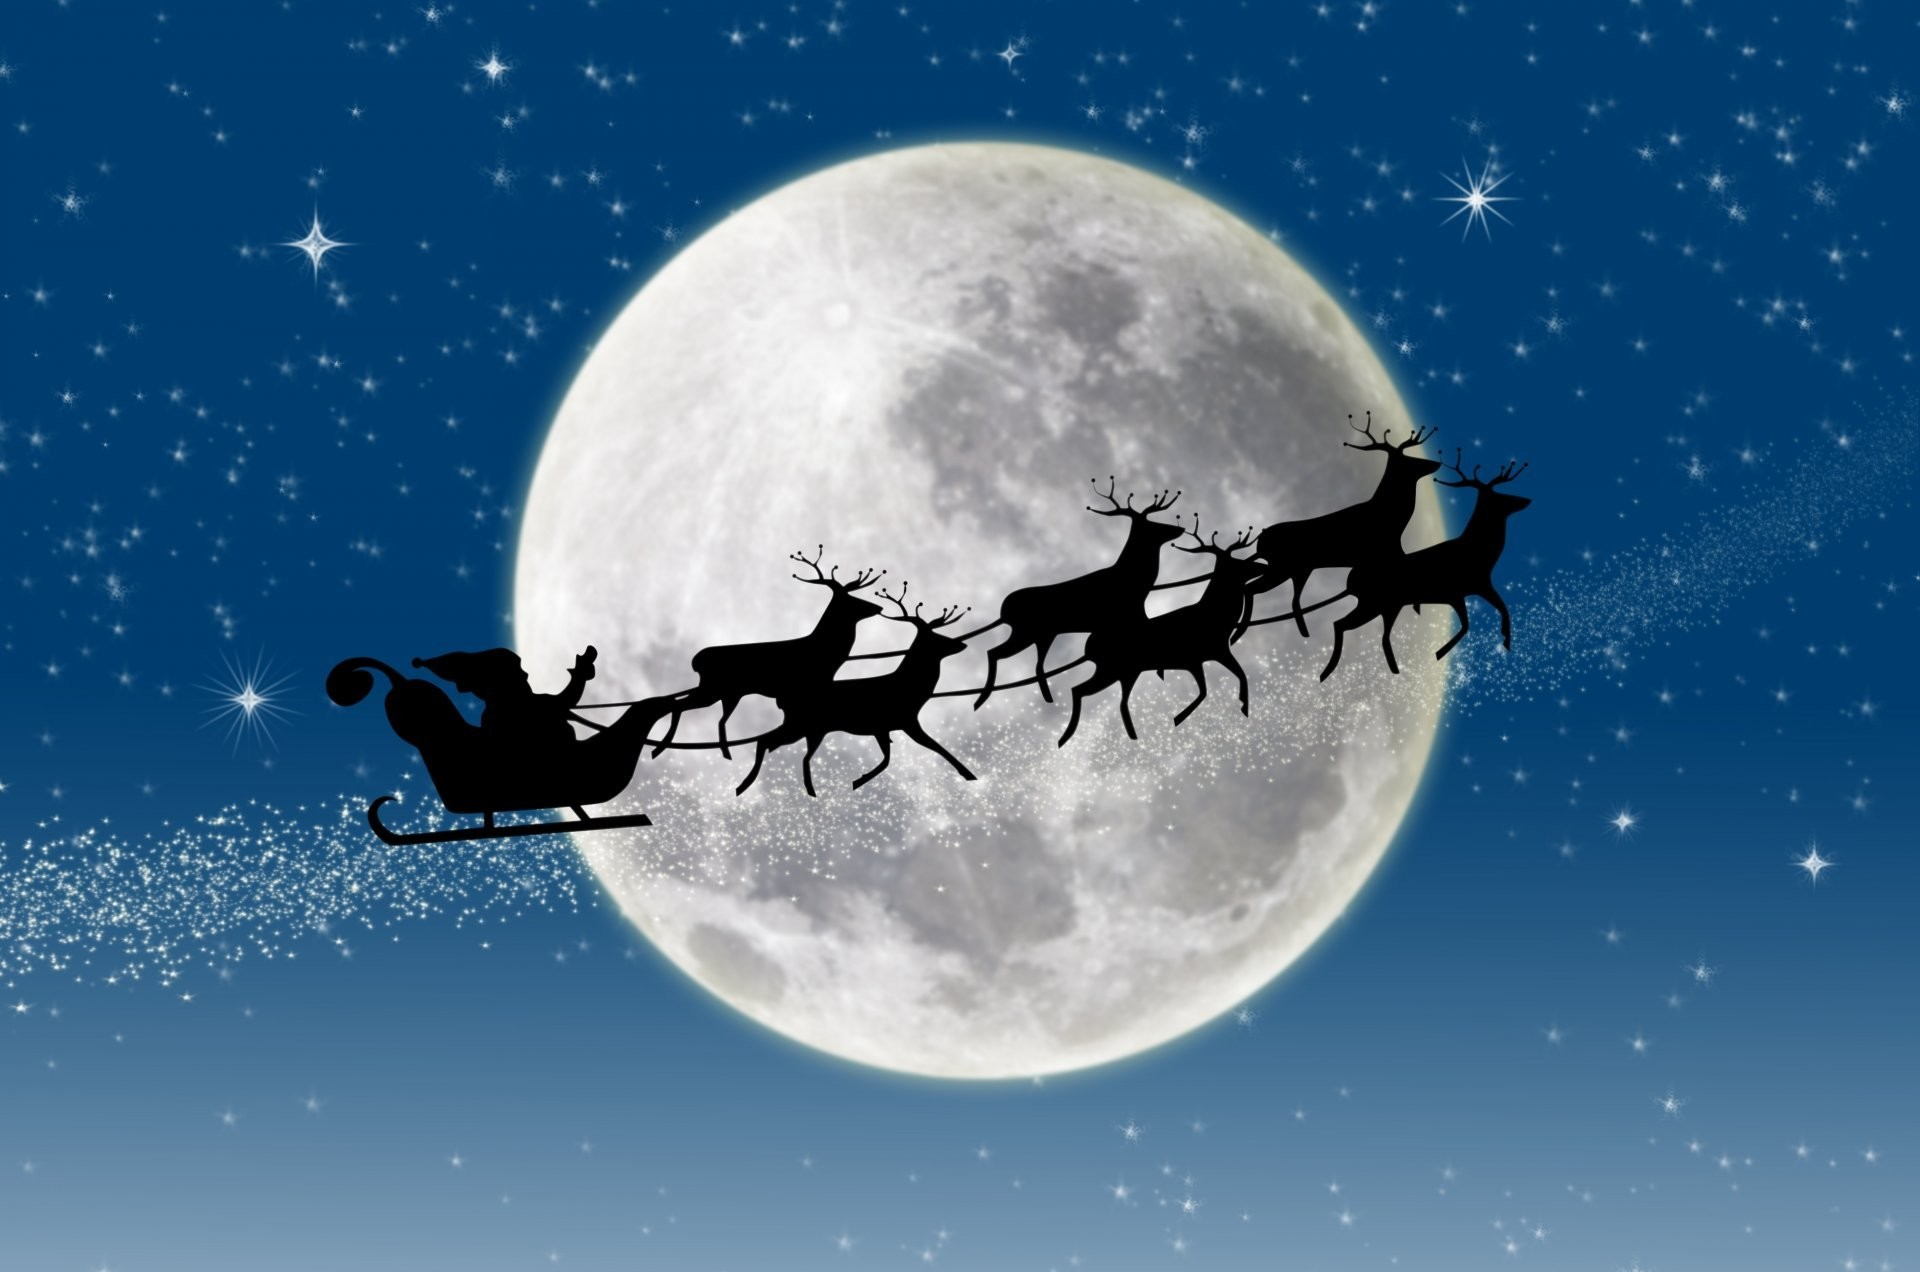 new year merry christmas snow full moon reindeer stars santa claus coming  new year merry christmas